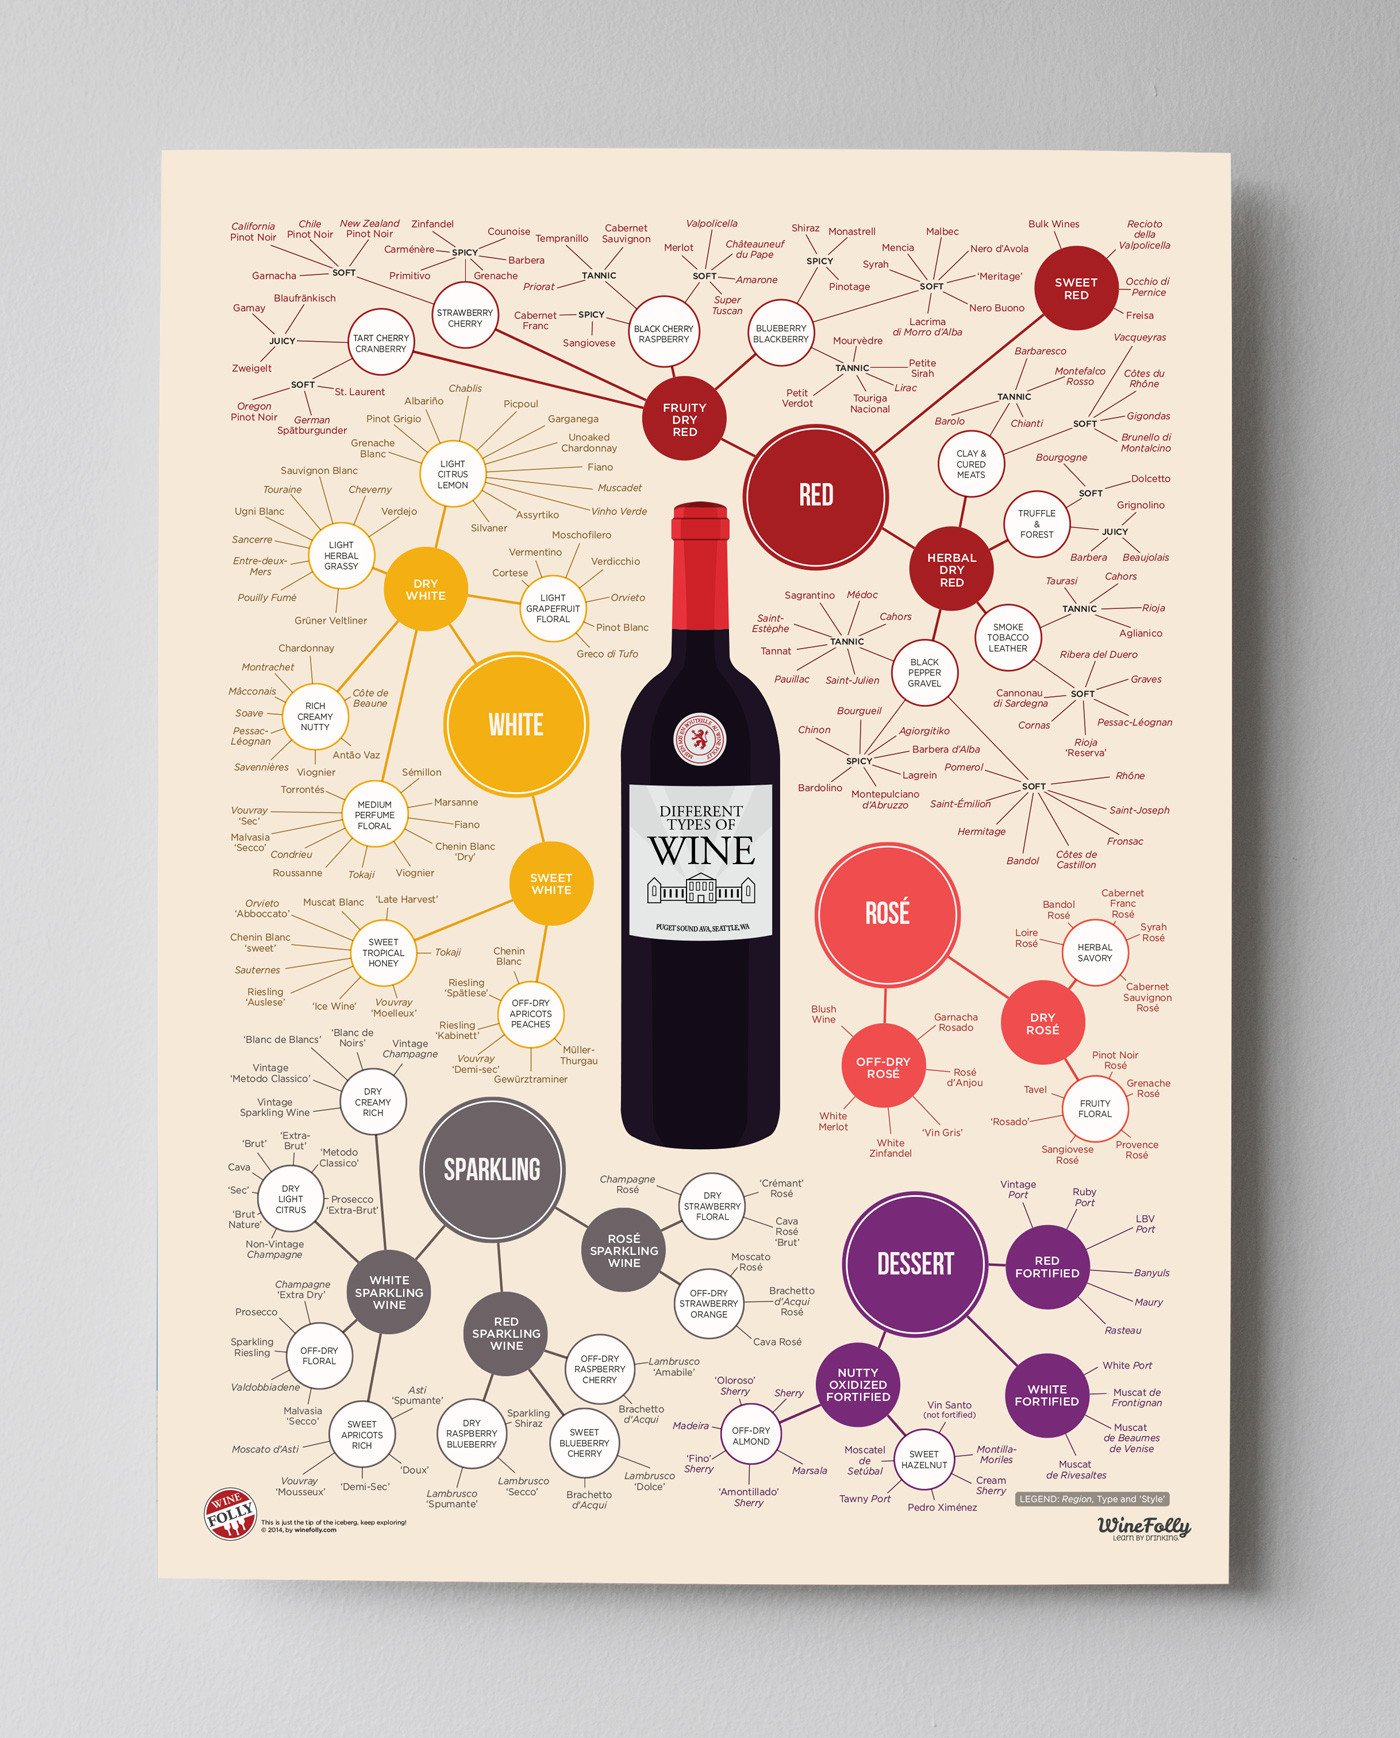 Different Types of Wine Poster by Wine Folly